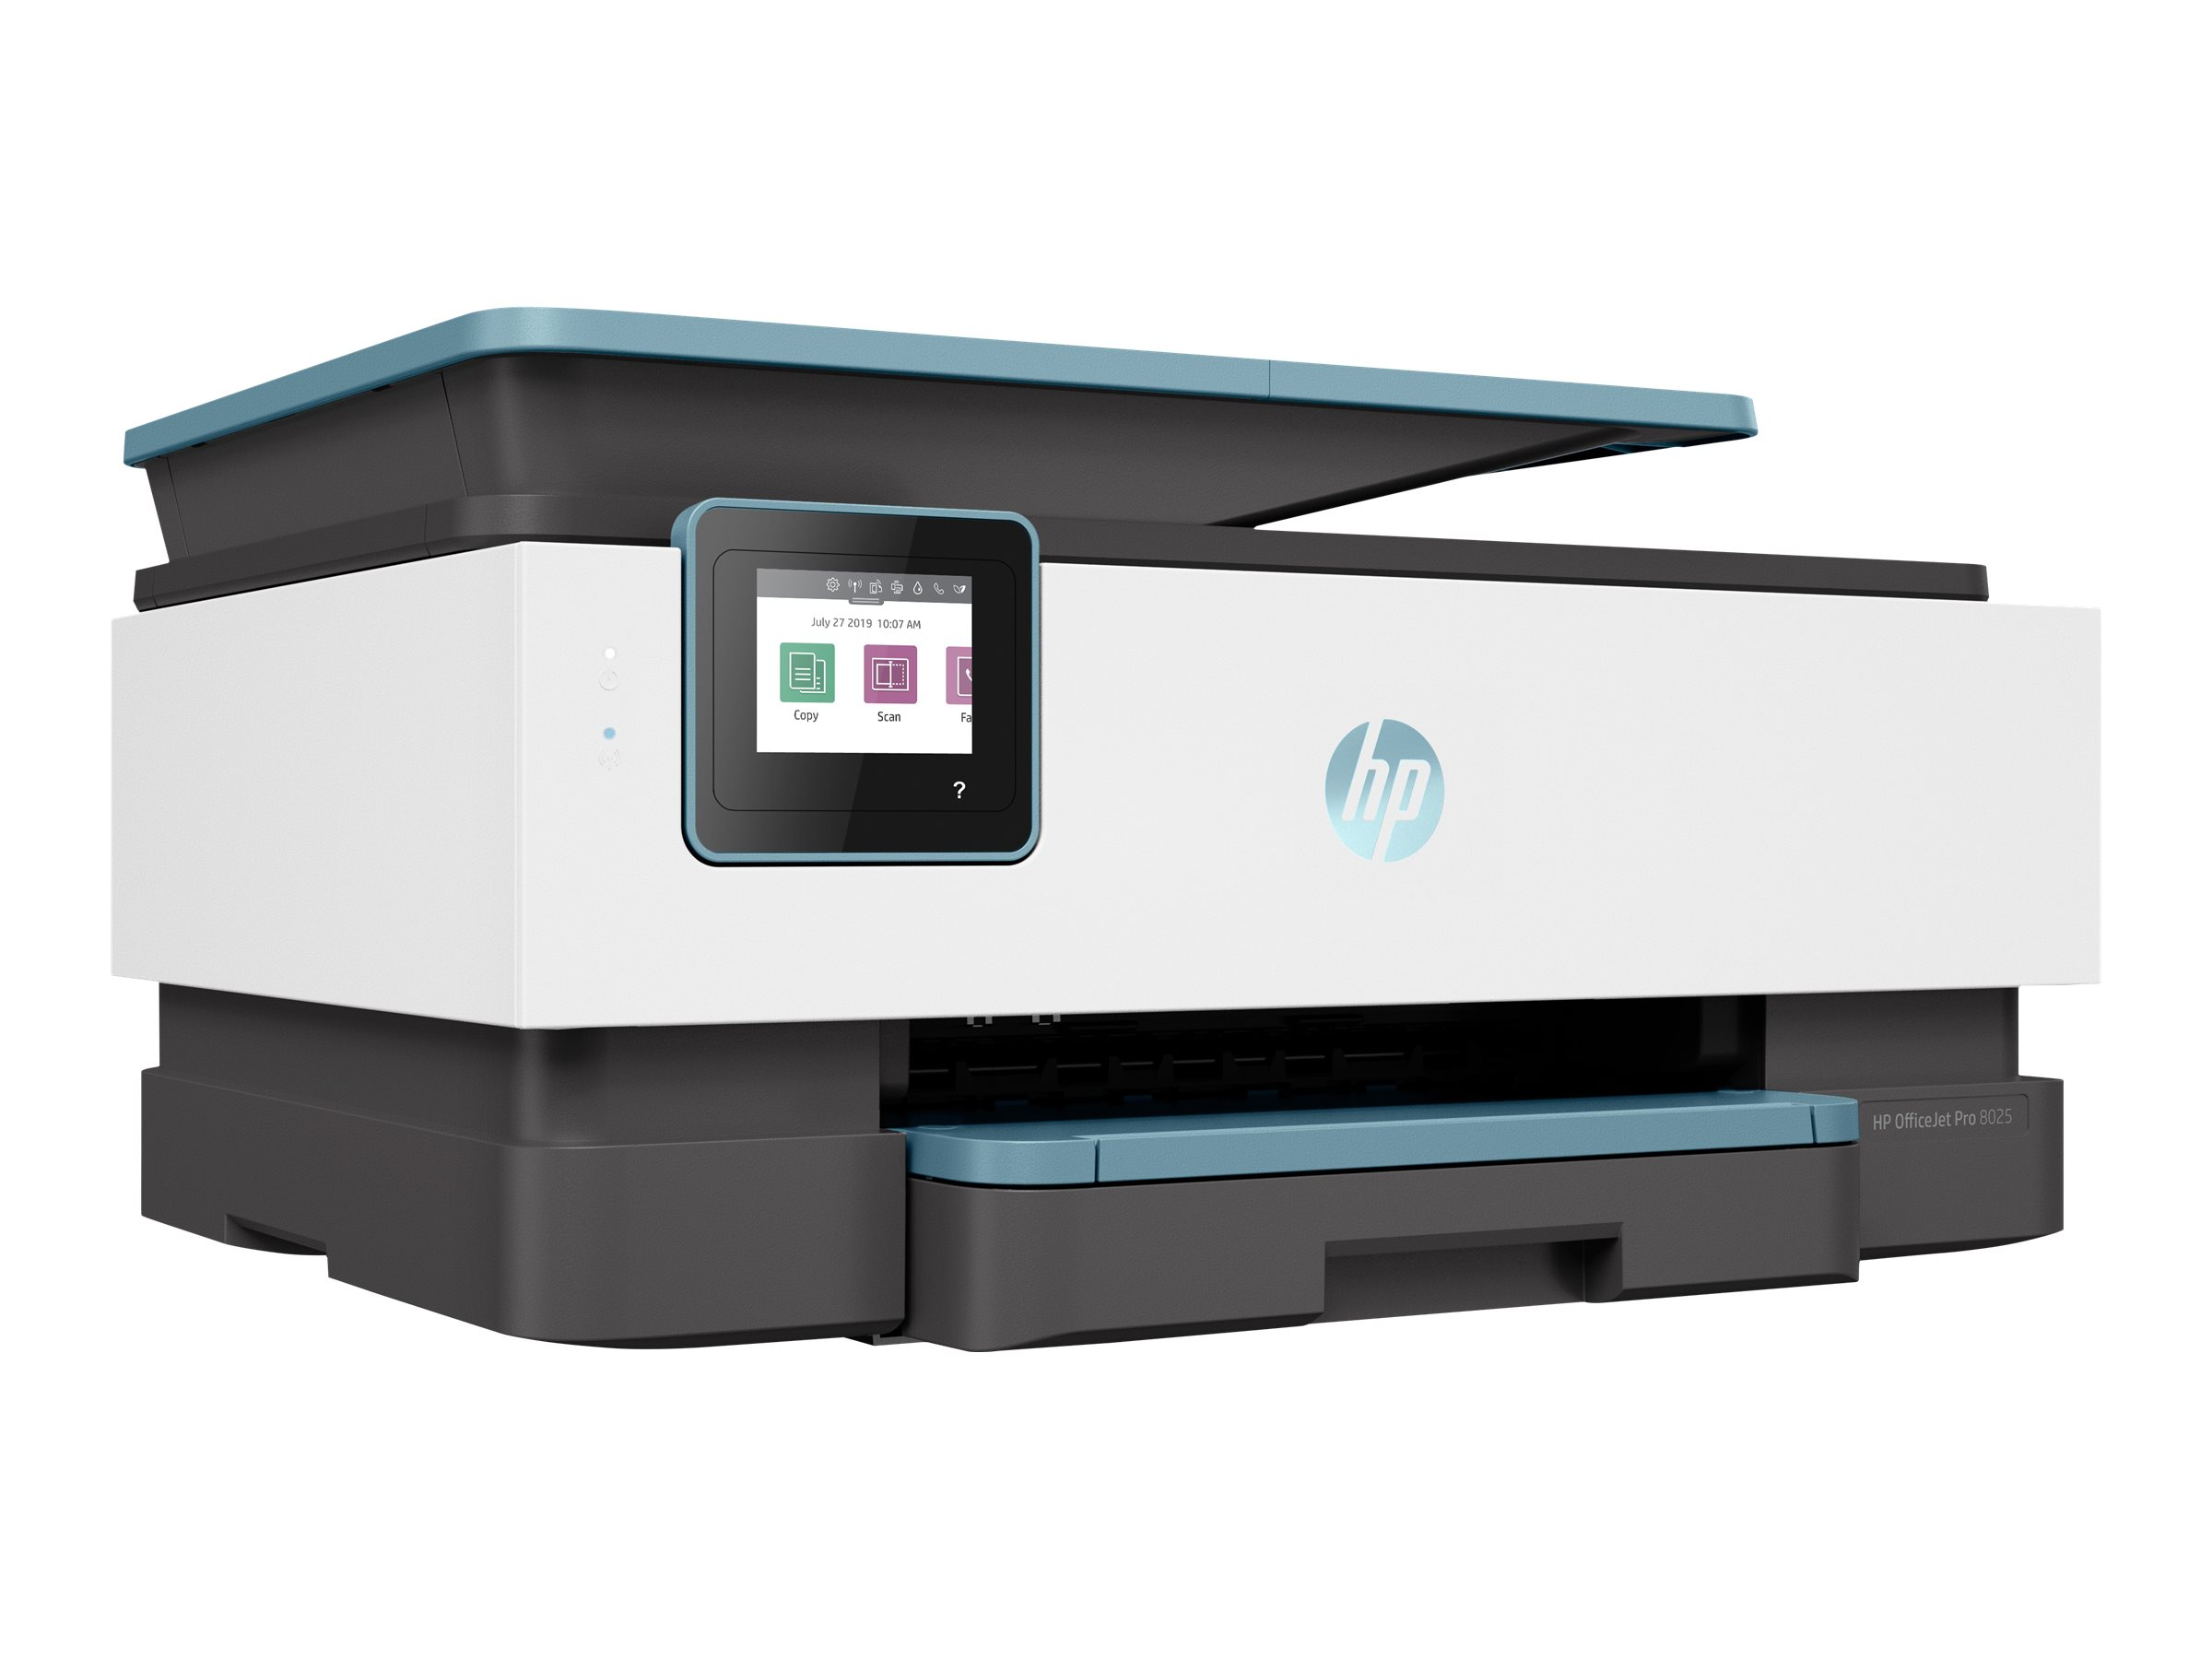 HP Officejet Pro 8025 All-in-One - Multifunktionsdrucker - Farbe - Tintenstrahl - 216 x 297 mm (Original) - A4/Legal (Medien)